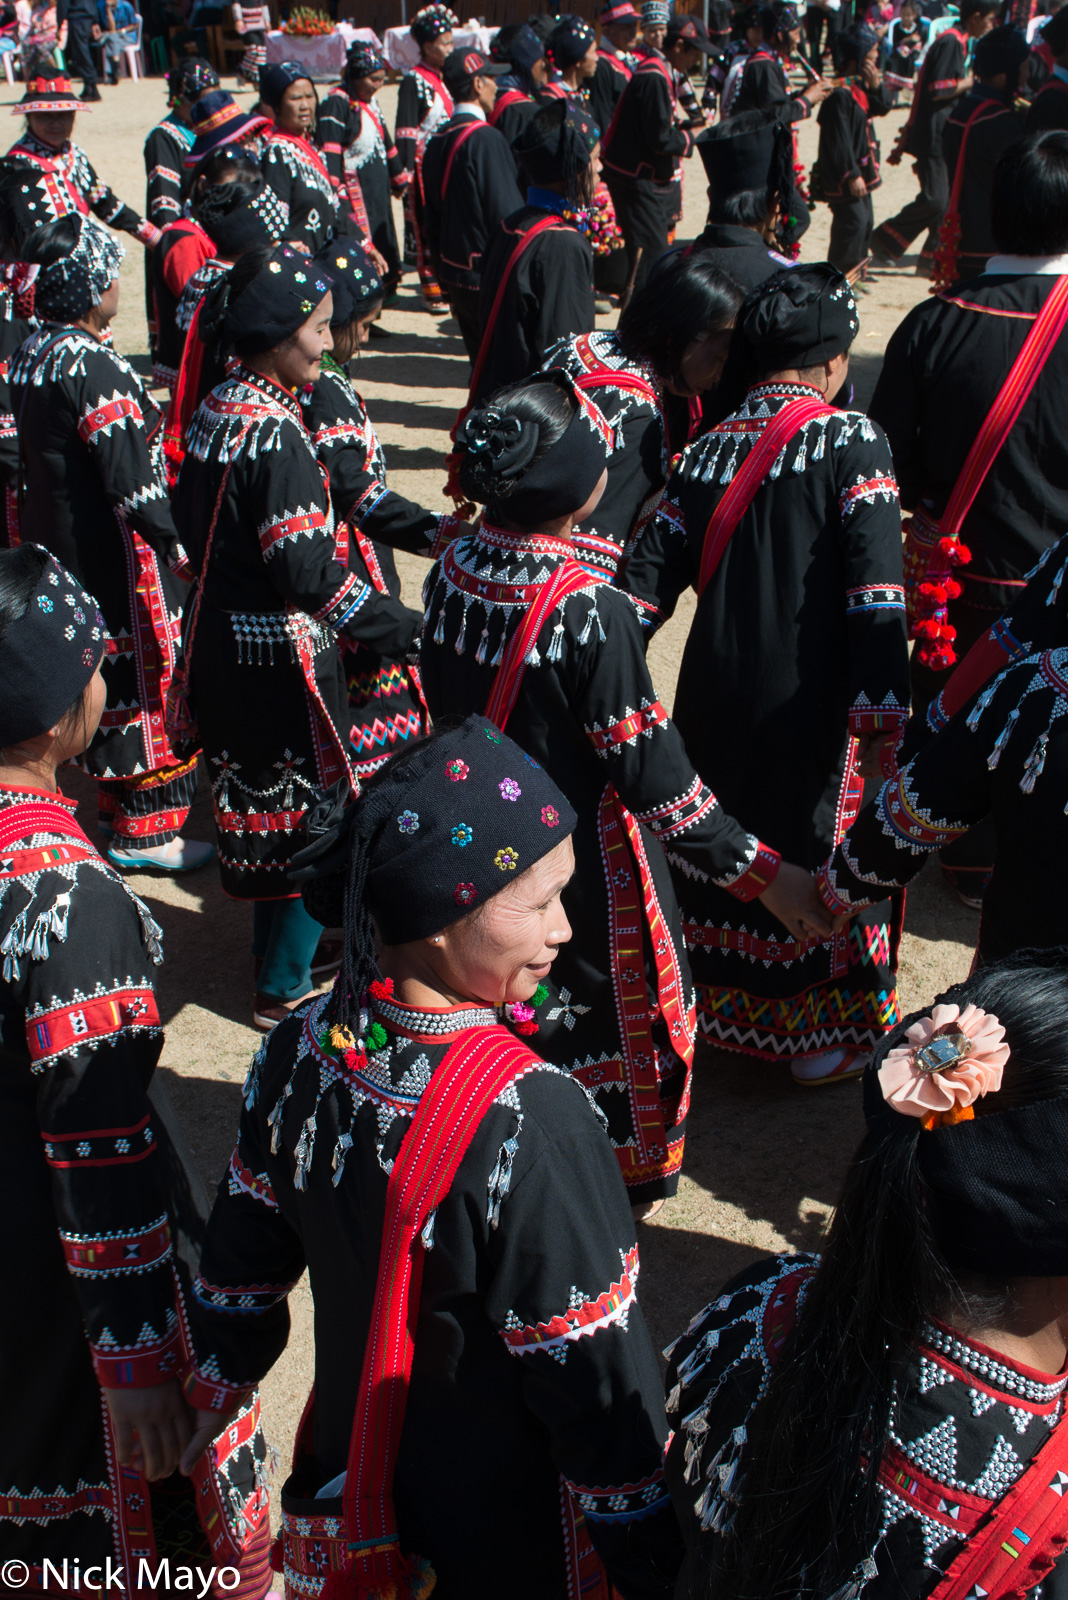 Lahu women dancing in a circle at their New Year festival in Kengtung.